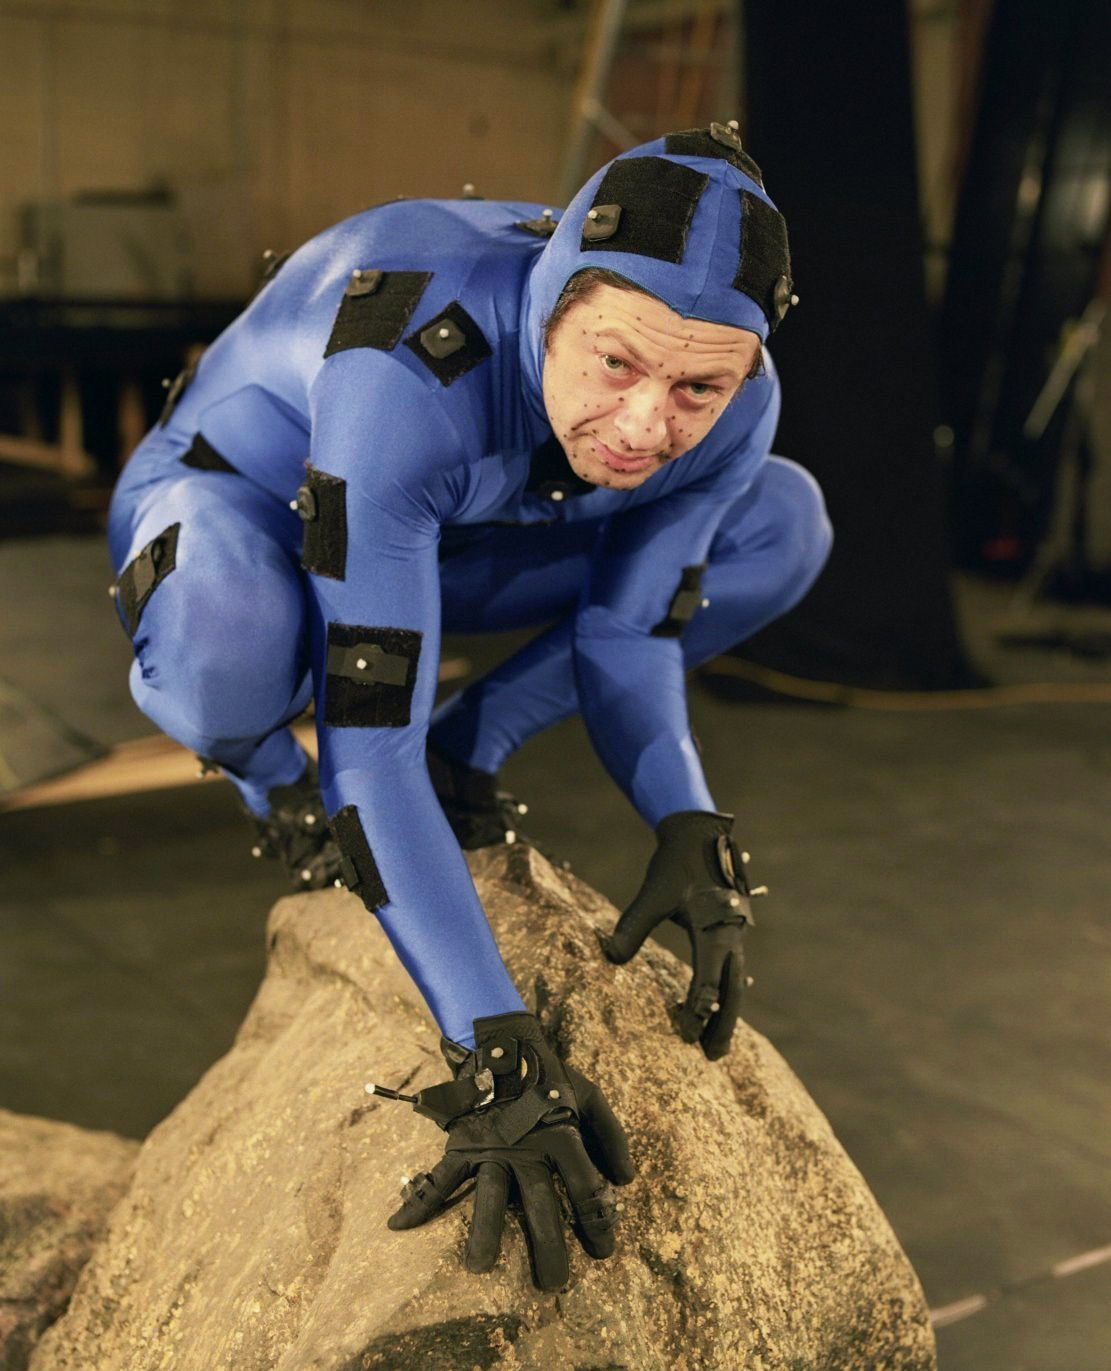 Andy Serkis as Gollum filming The Lord of the Rings: The Two Towers, 2002.